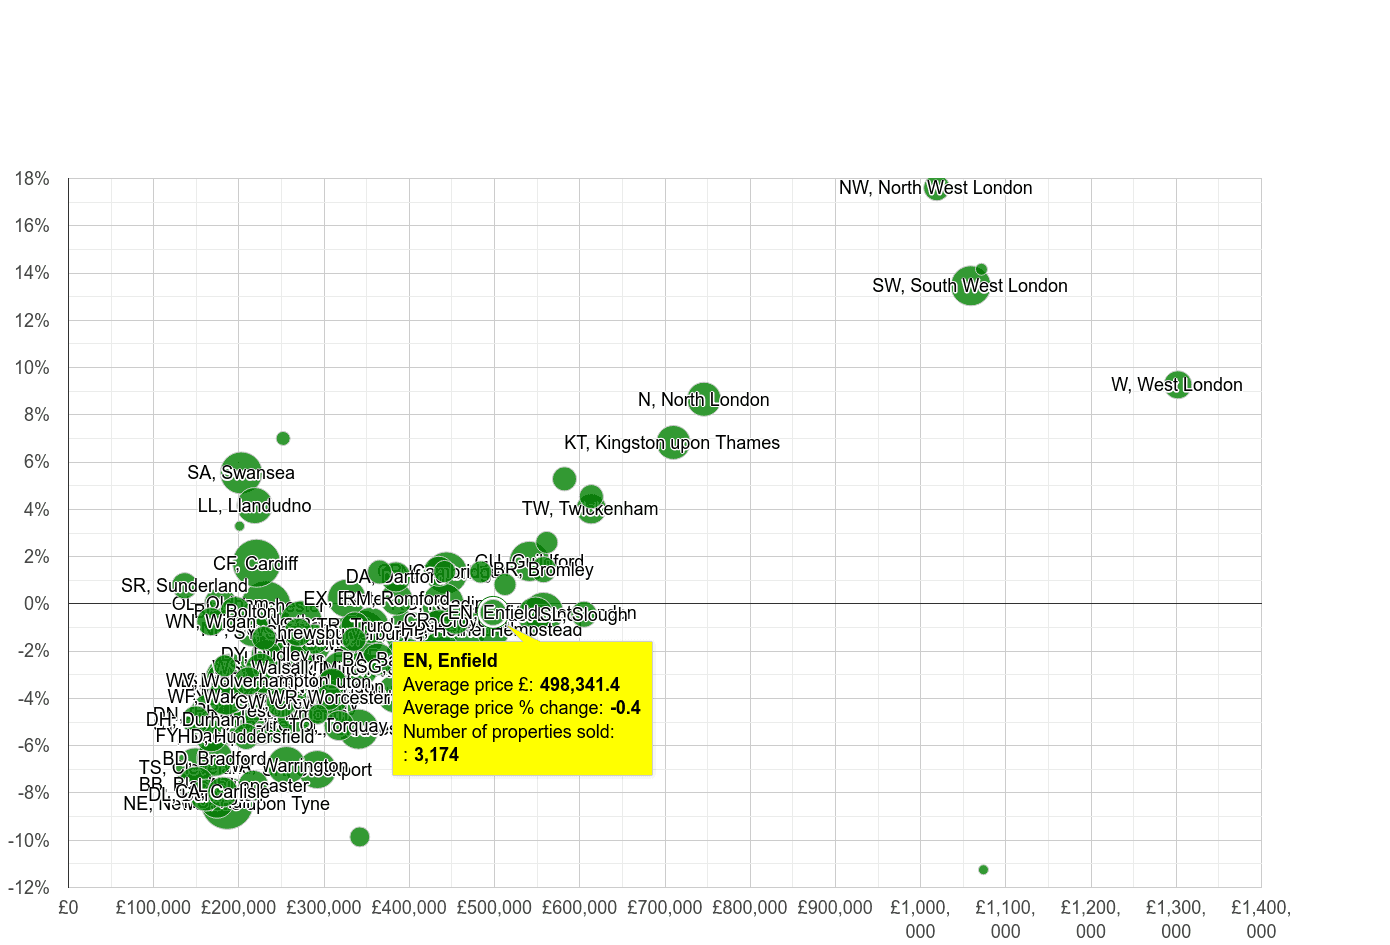 Enfield house prices compared to other areas